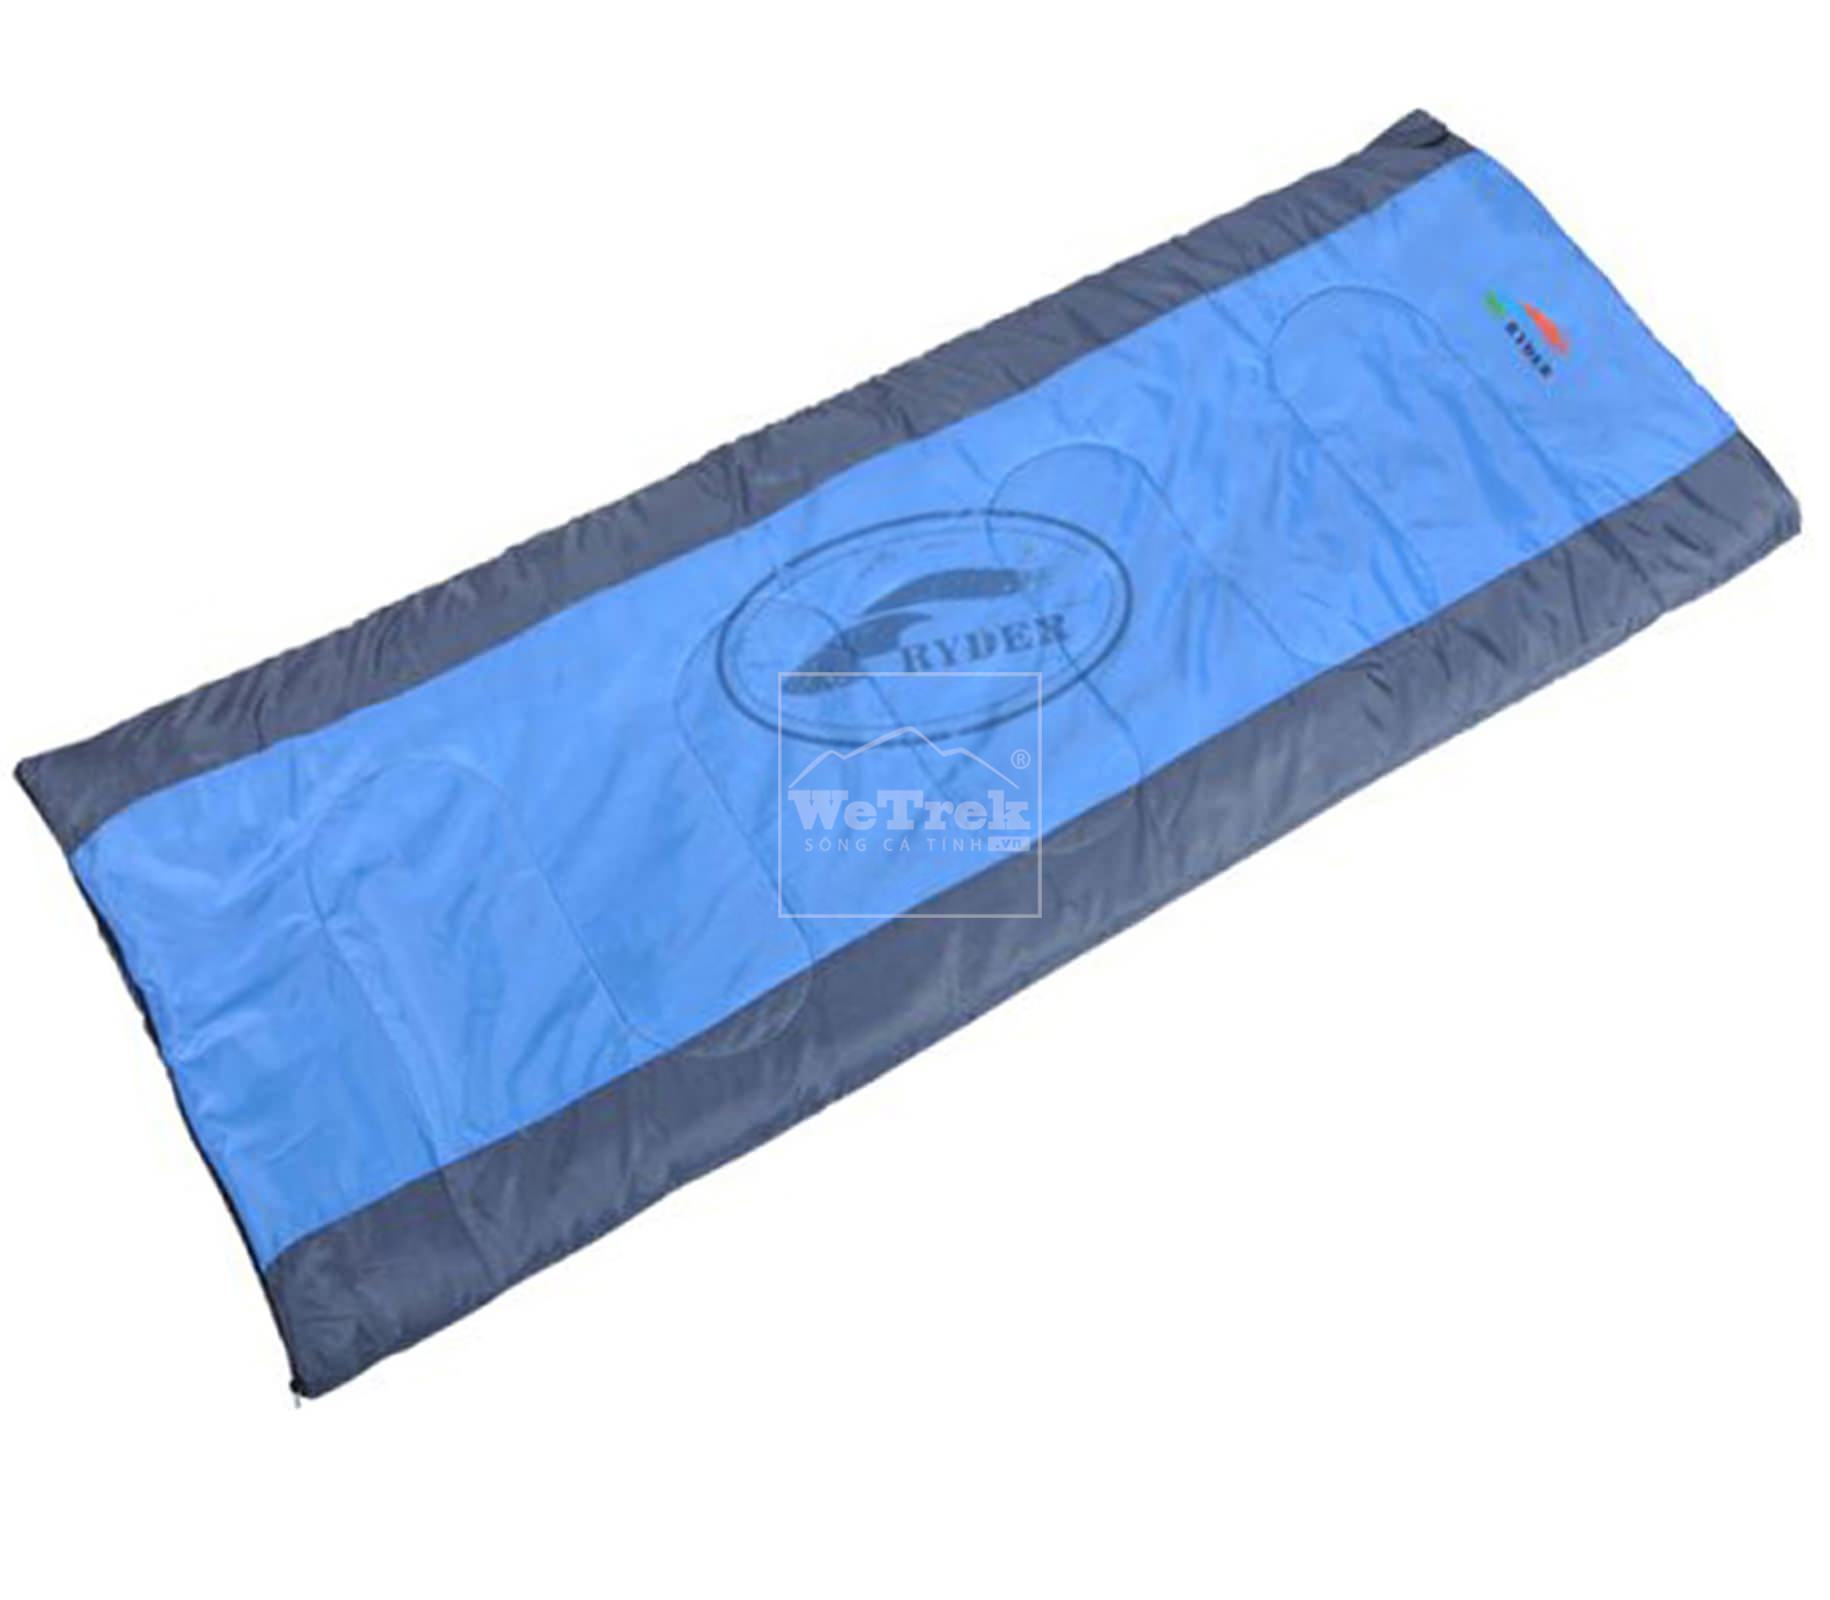 Túi ngủ Ryder Envelope Sleeping Bag D1001 Blue - 1211